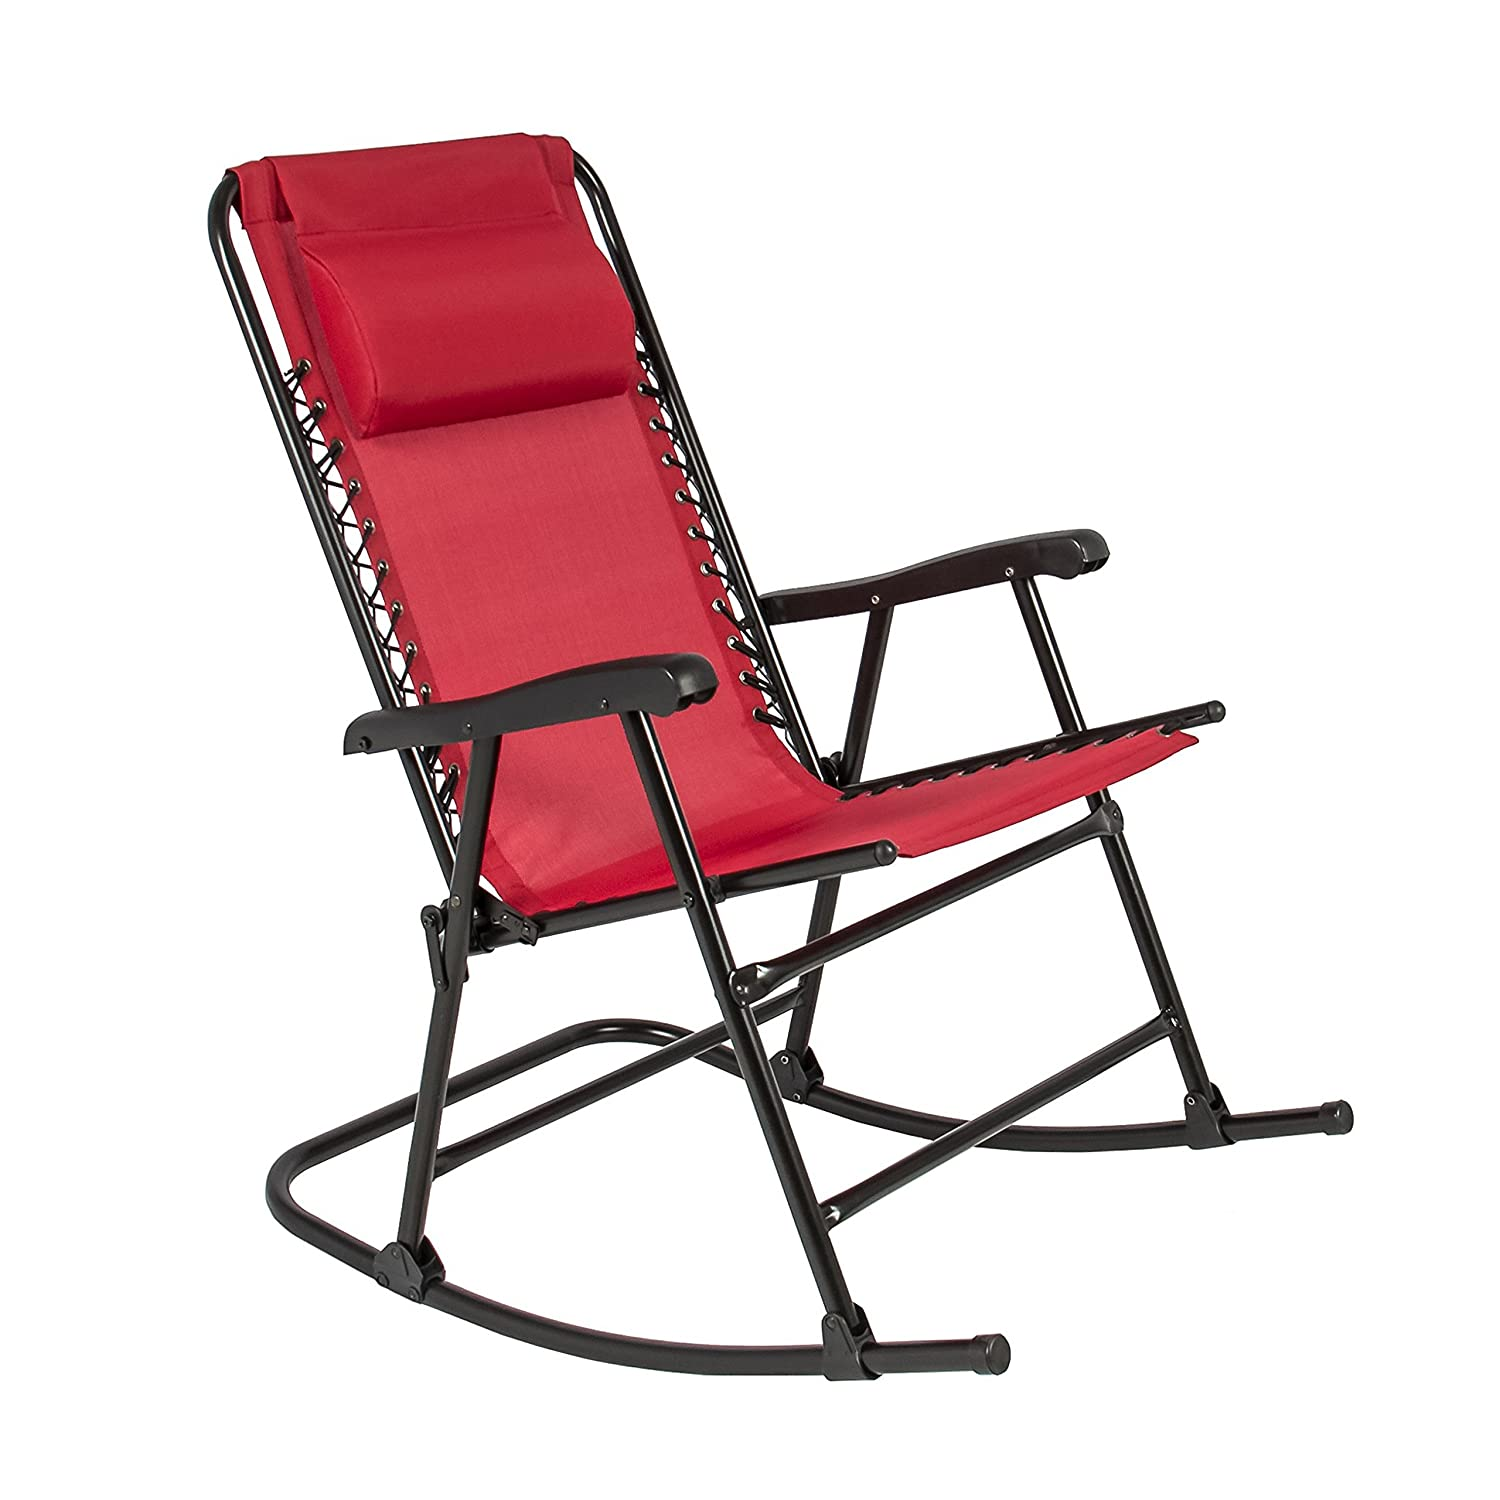 Lovely Aluminum Webbed Lawn Chairs